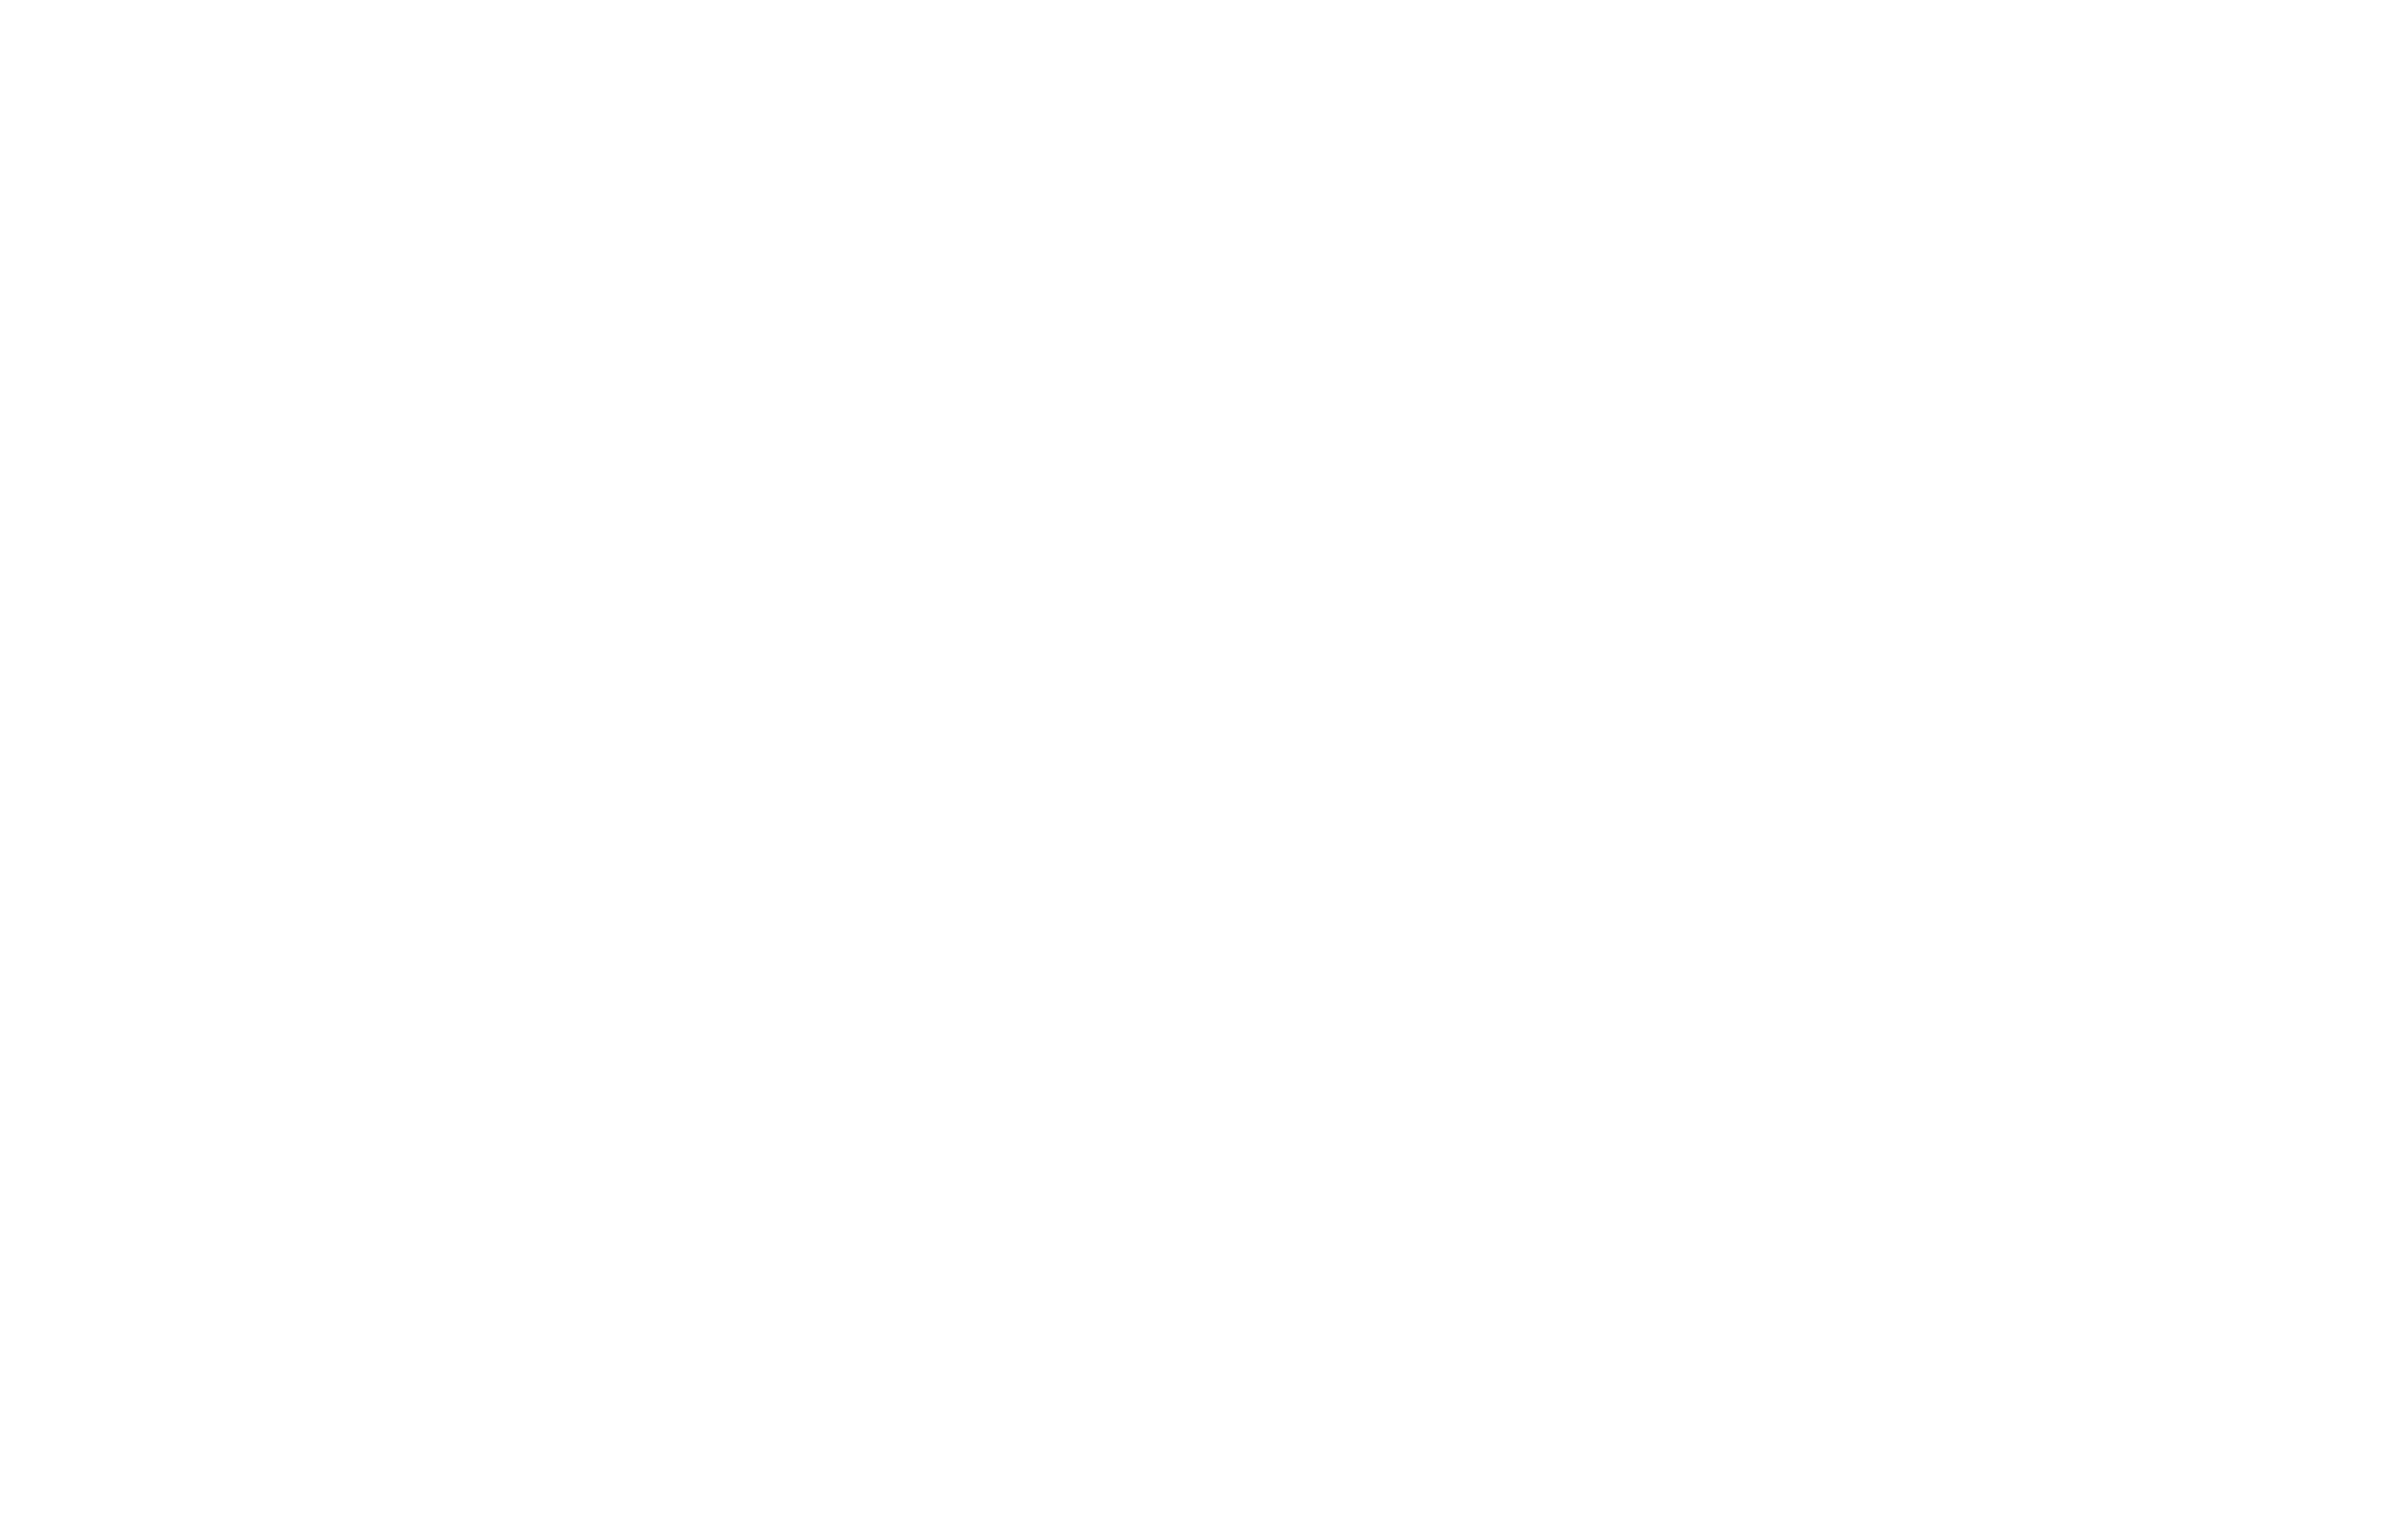 go beyond uncertainty